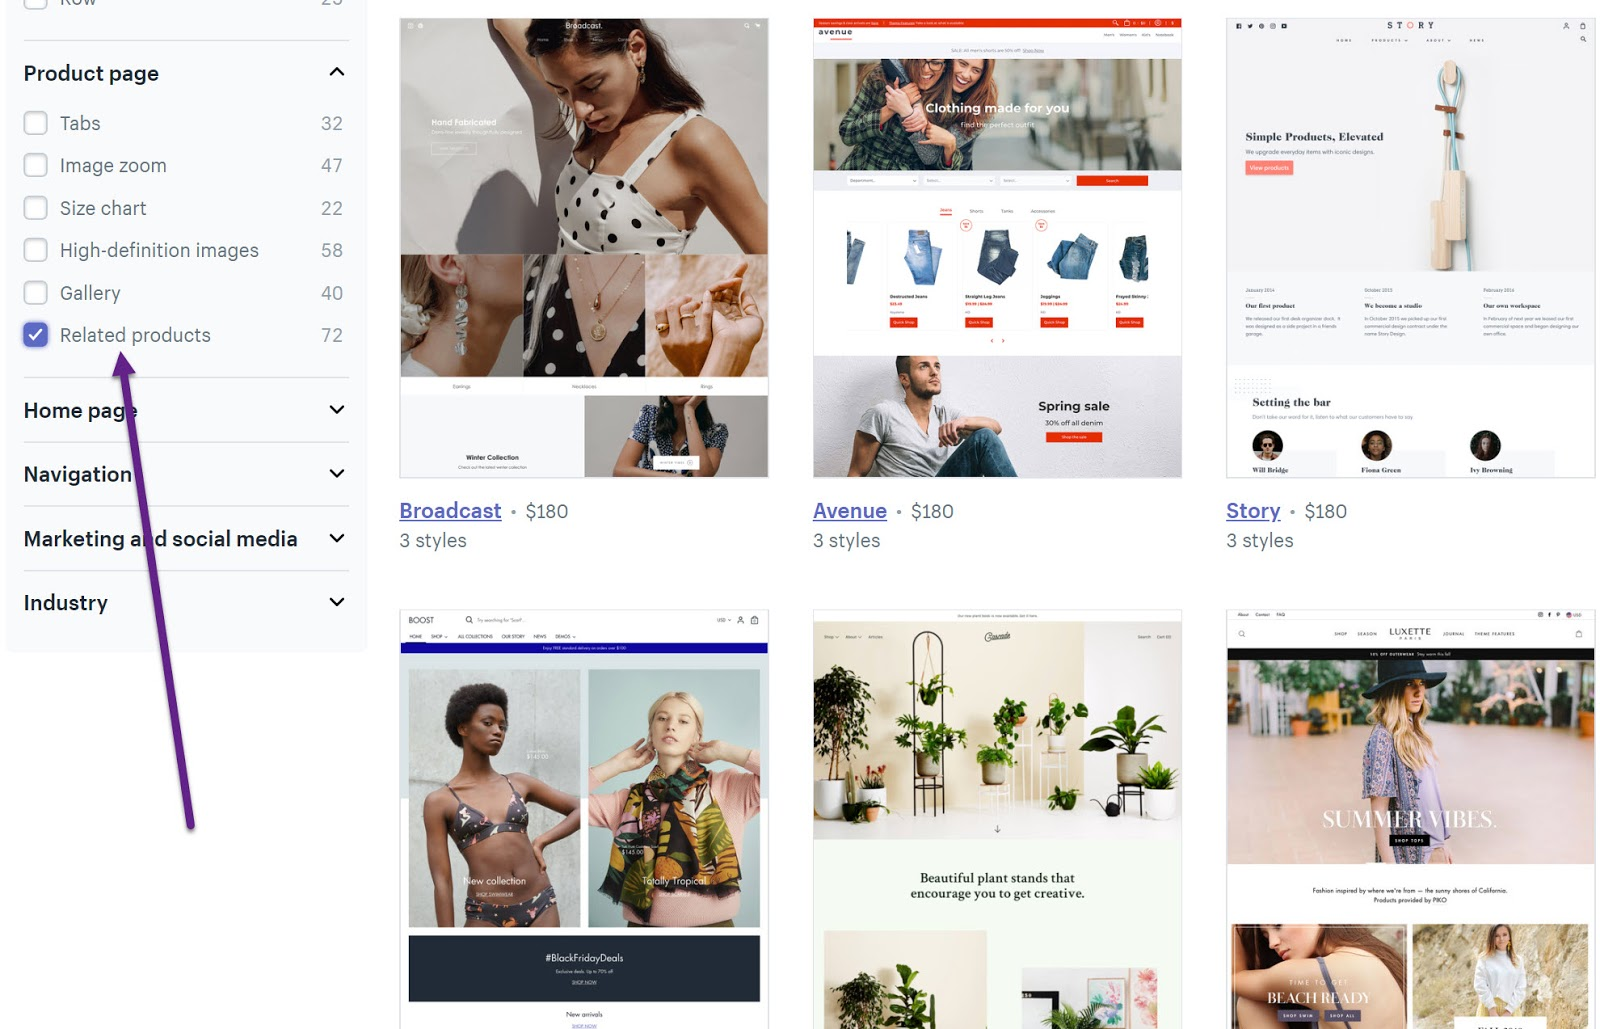 Related products on an ecommerce store